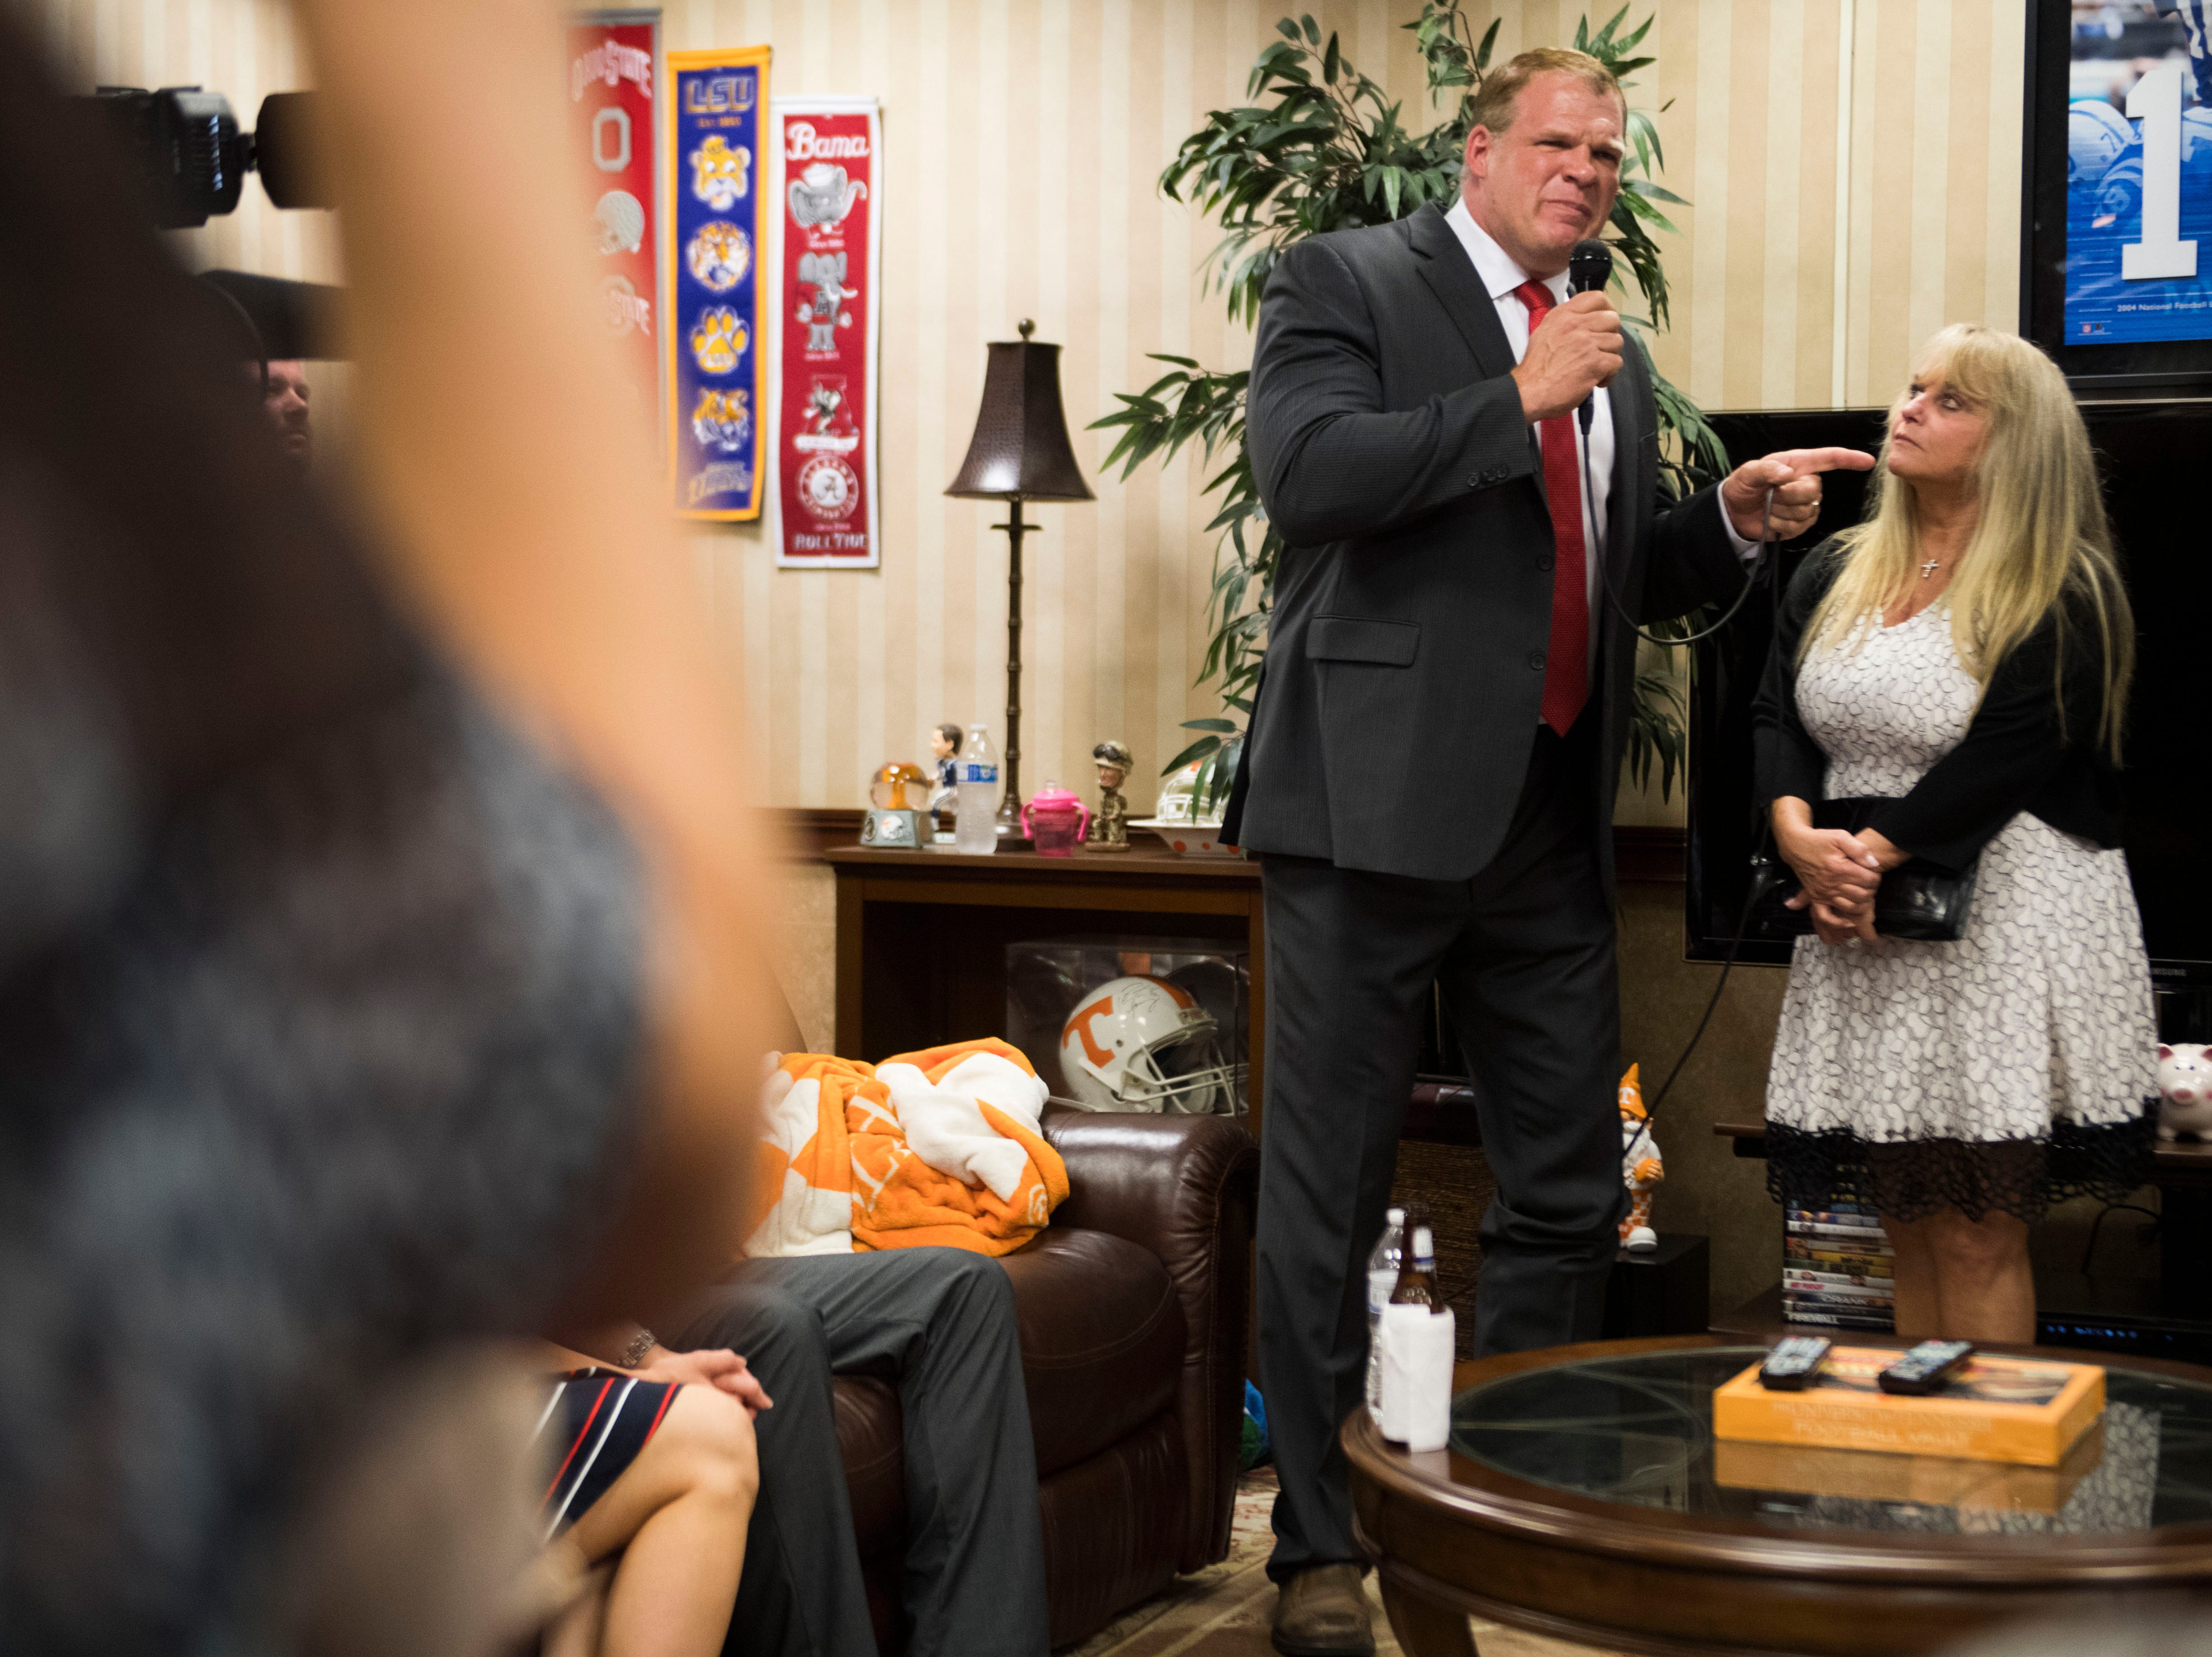 Glenn Jacobs speaks to a crowd after early results call him Knox County Mayor, next to his wife Crystal at the Crowne Plaza on election day in Knox County Thursday, Aug. 2, 2018.